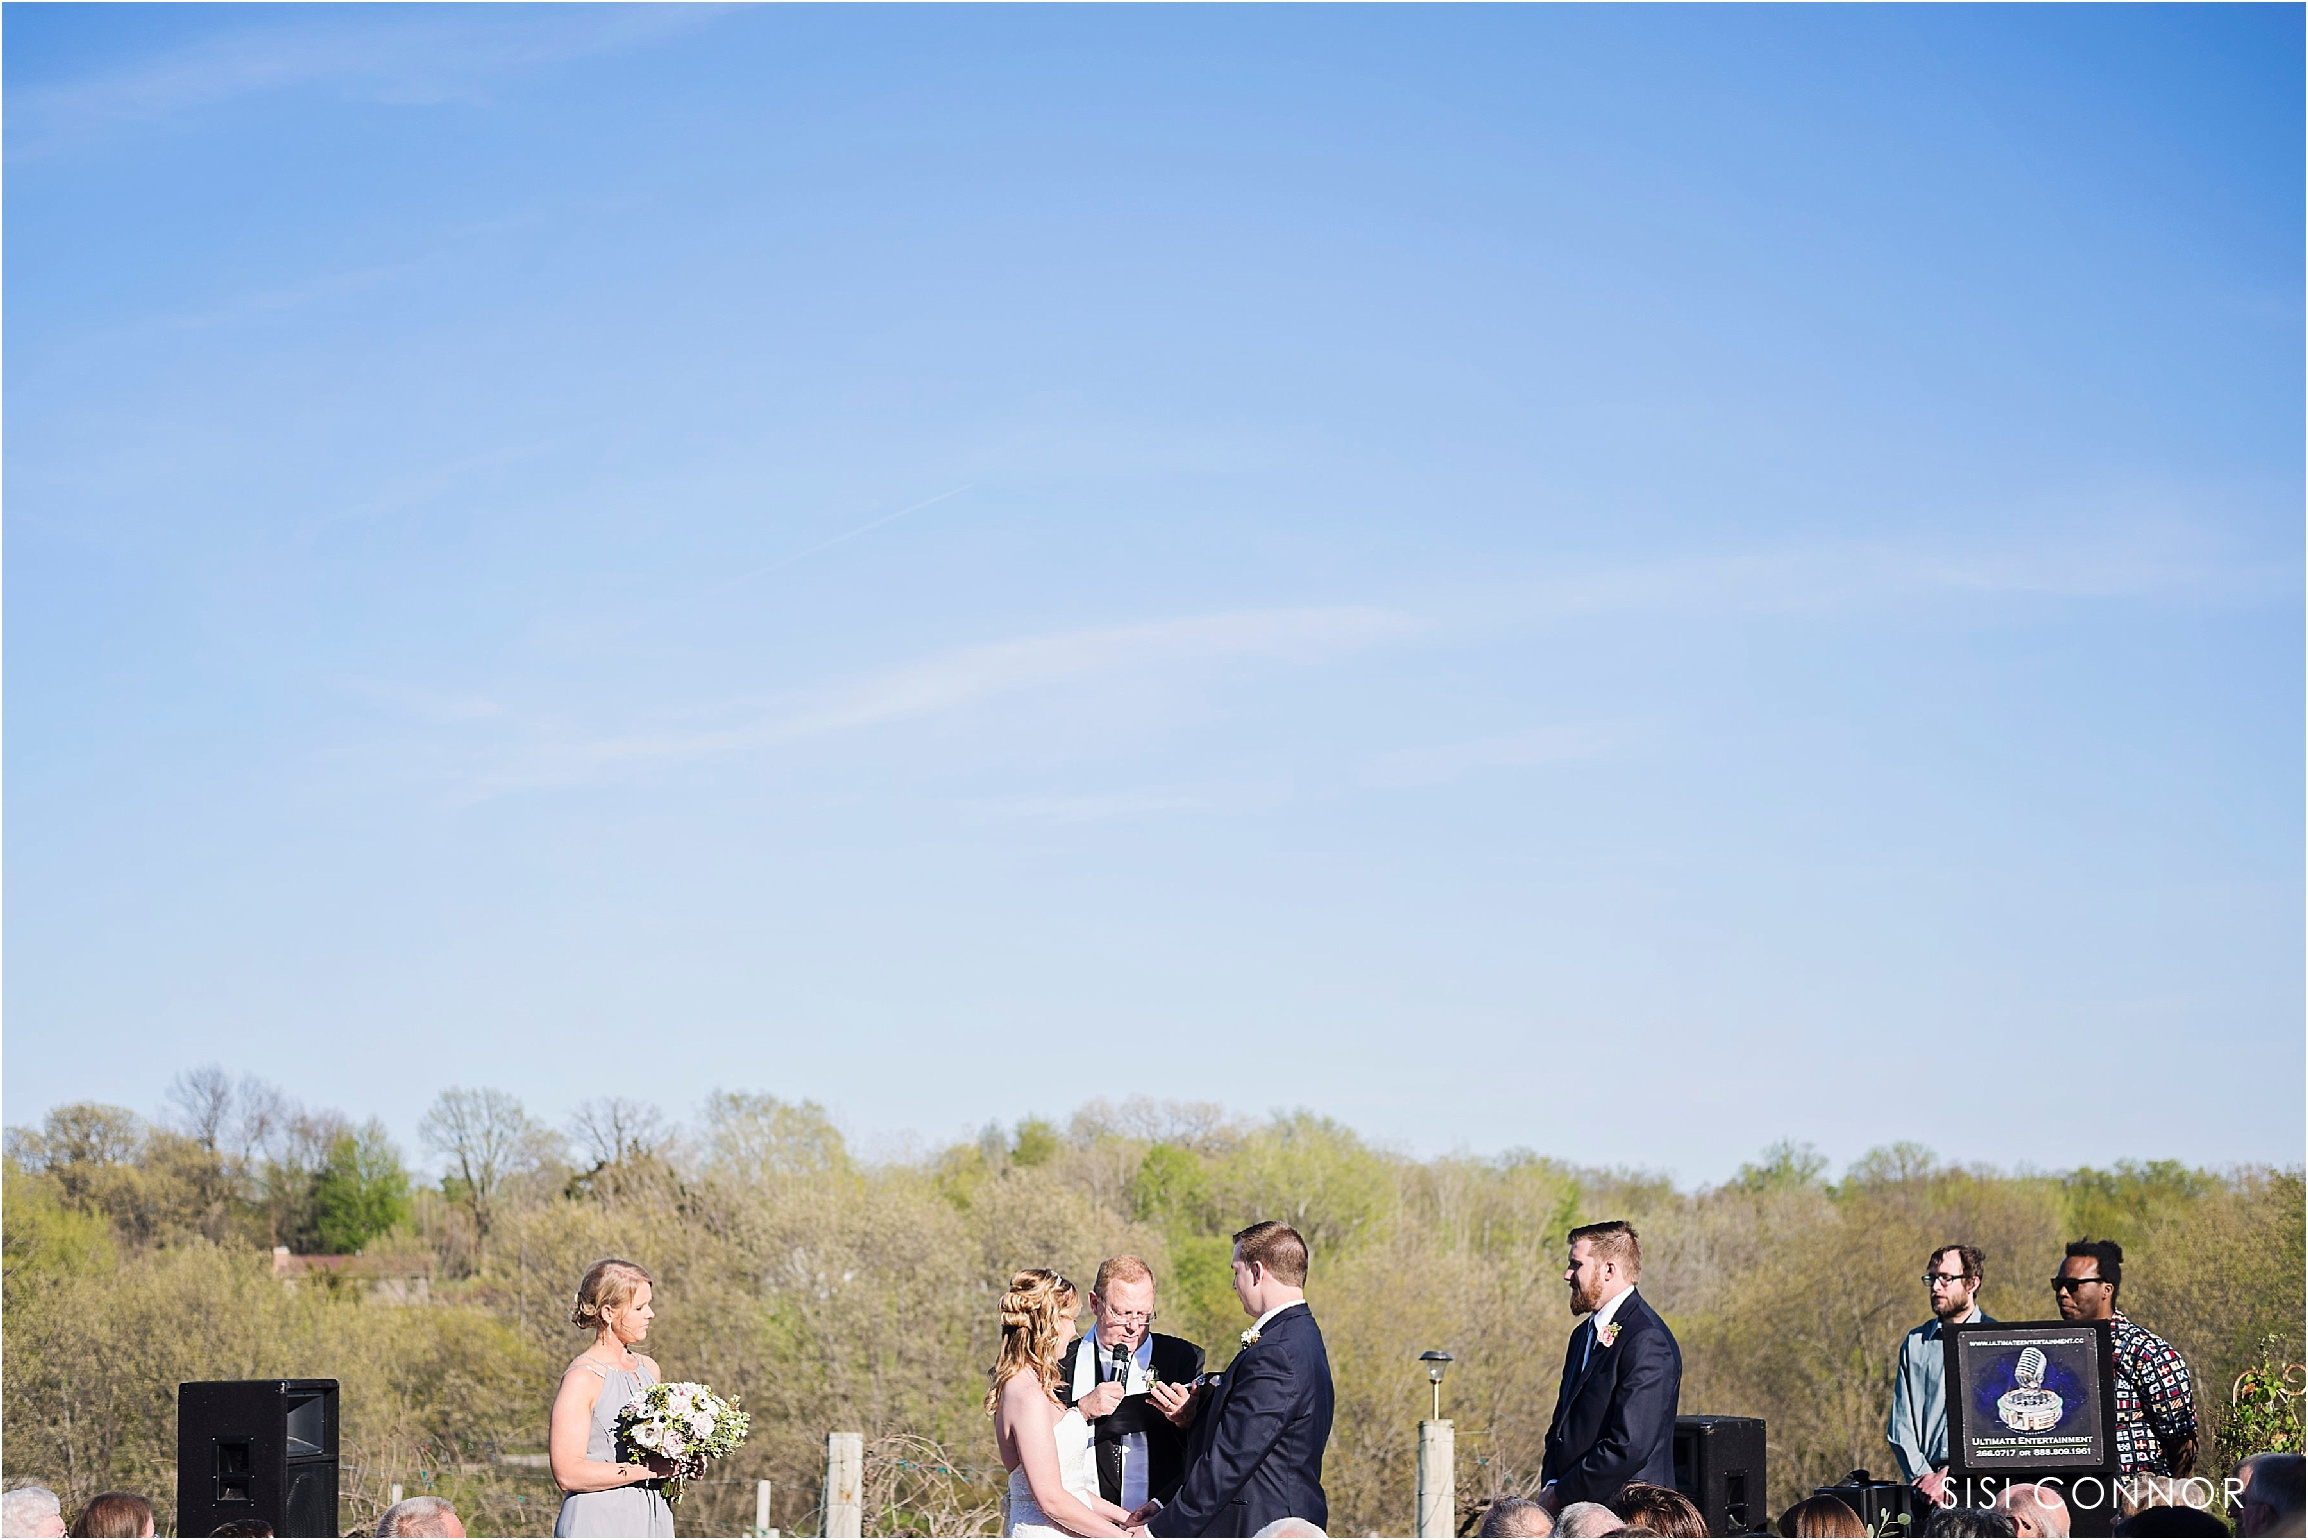 Wedding Ceremony outdoors at the Cedar Ridge Winery in Swisher, Iowa